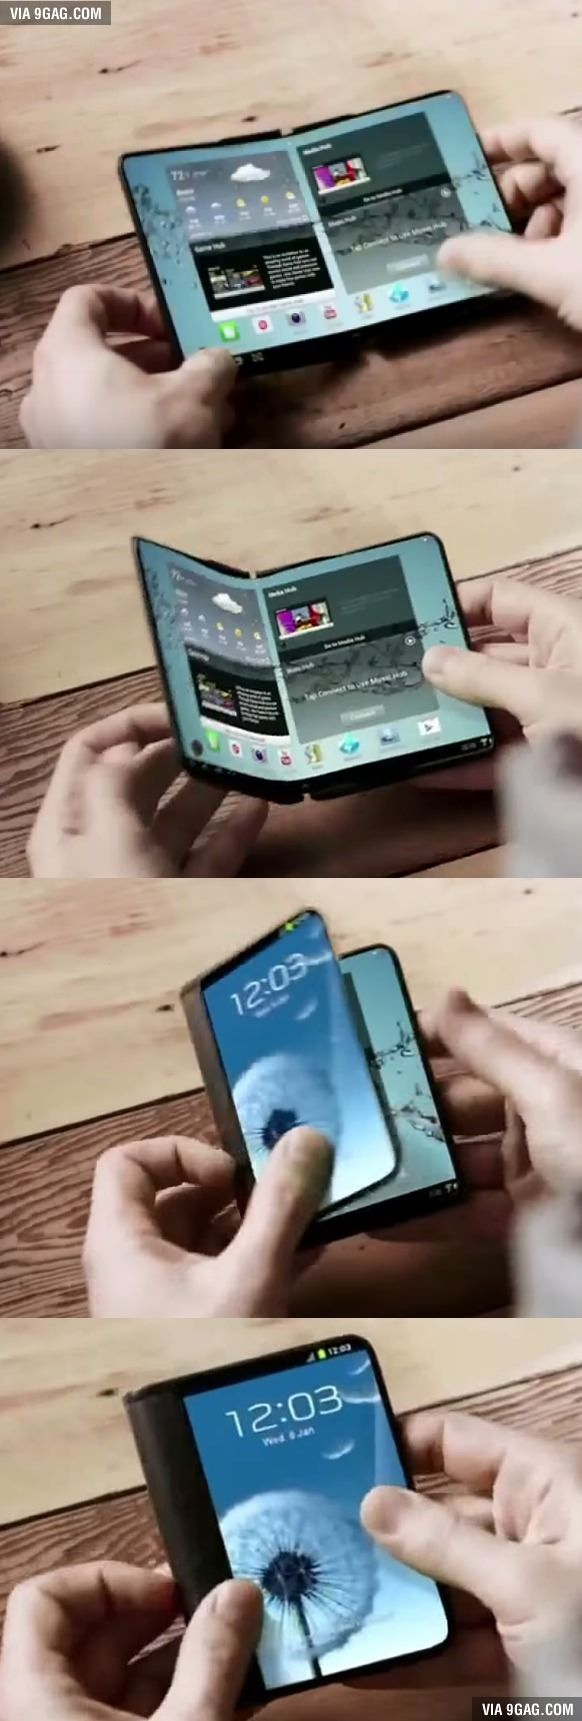 Samsung's foldable smartphone is set to be released in January Next Year.